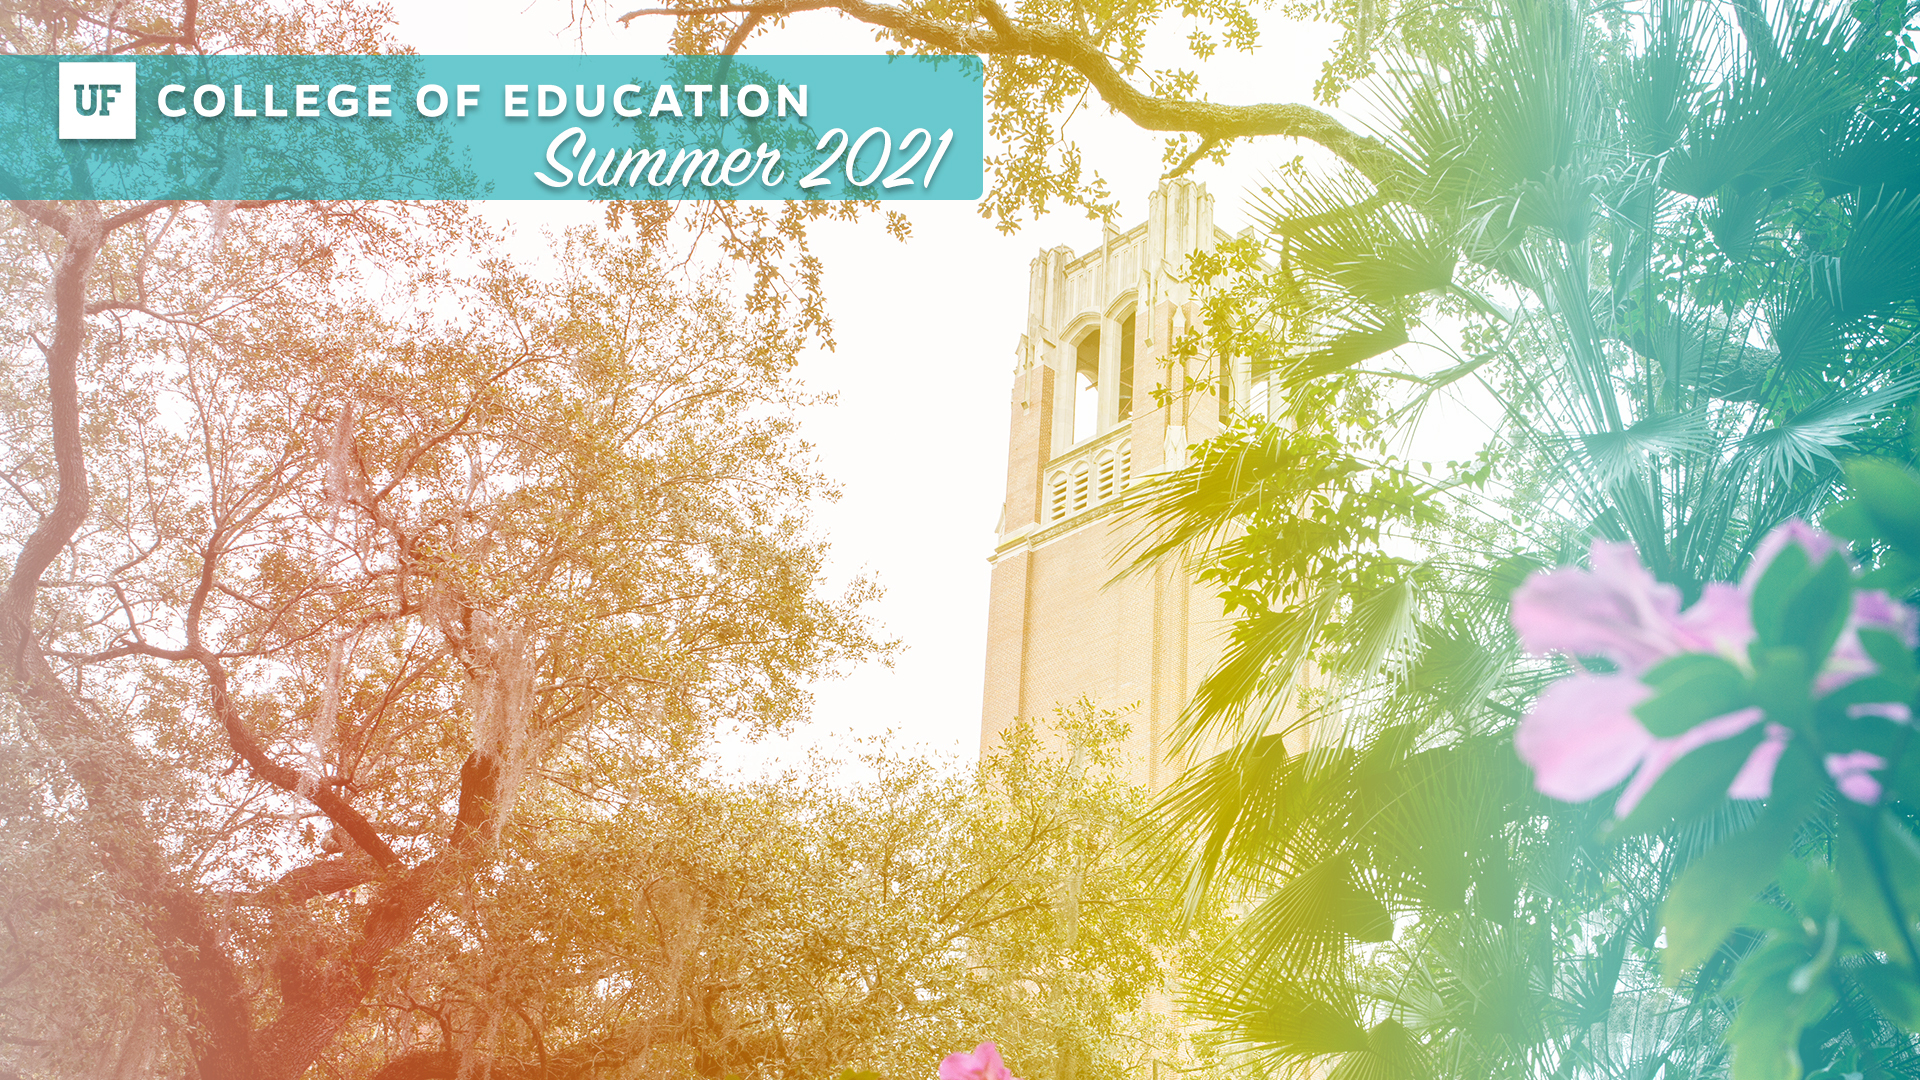 UF College of Education - Zoom Background